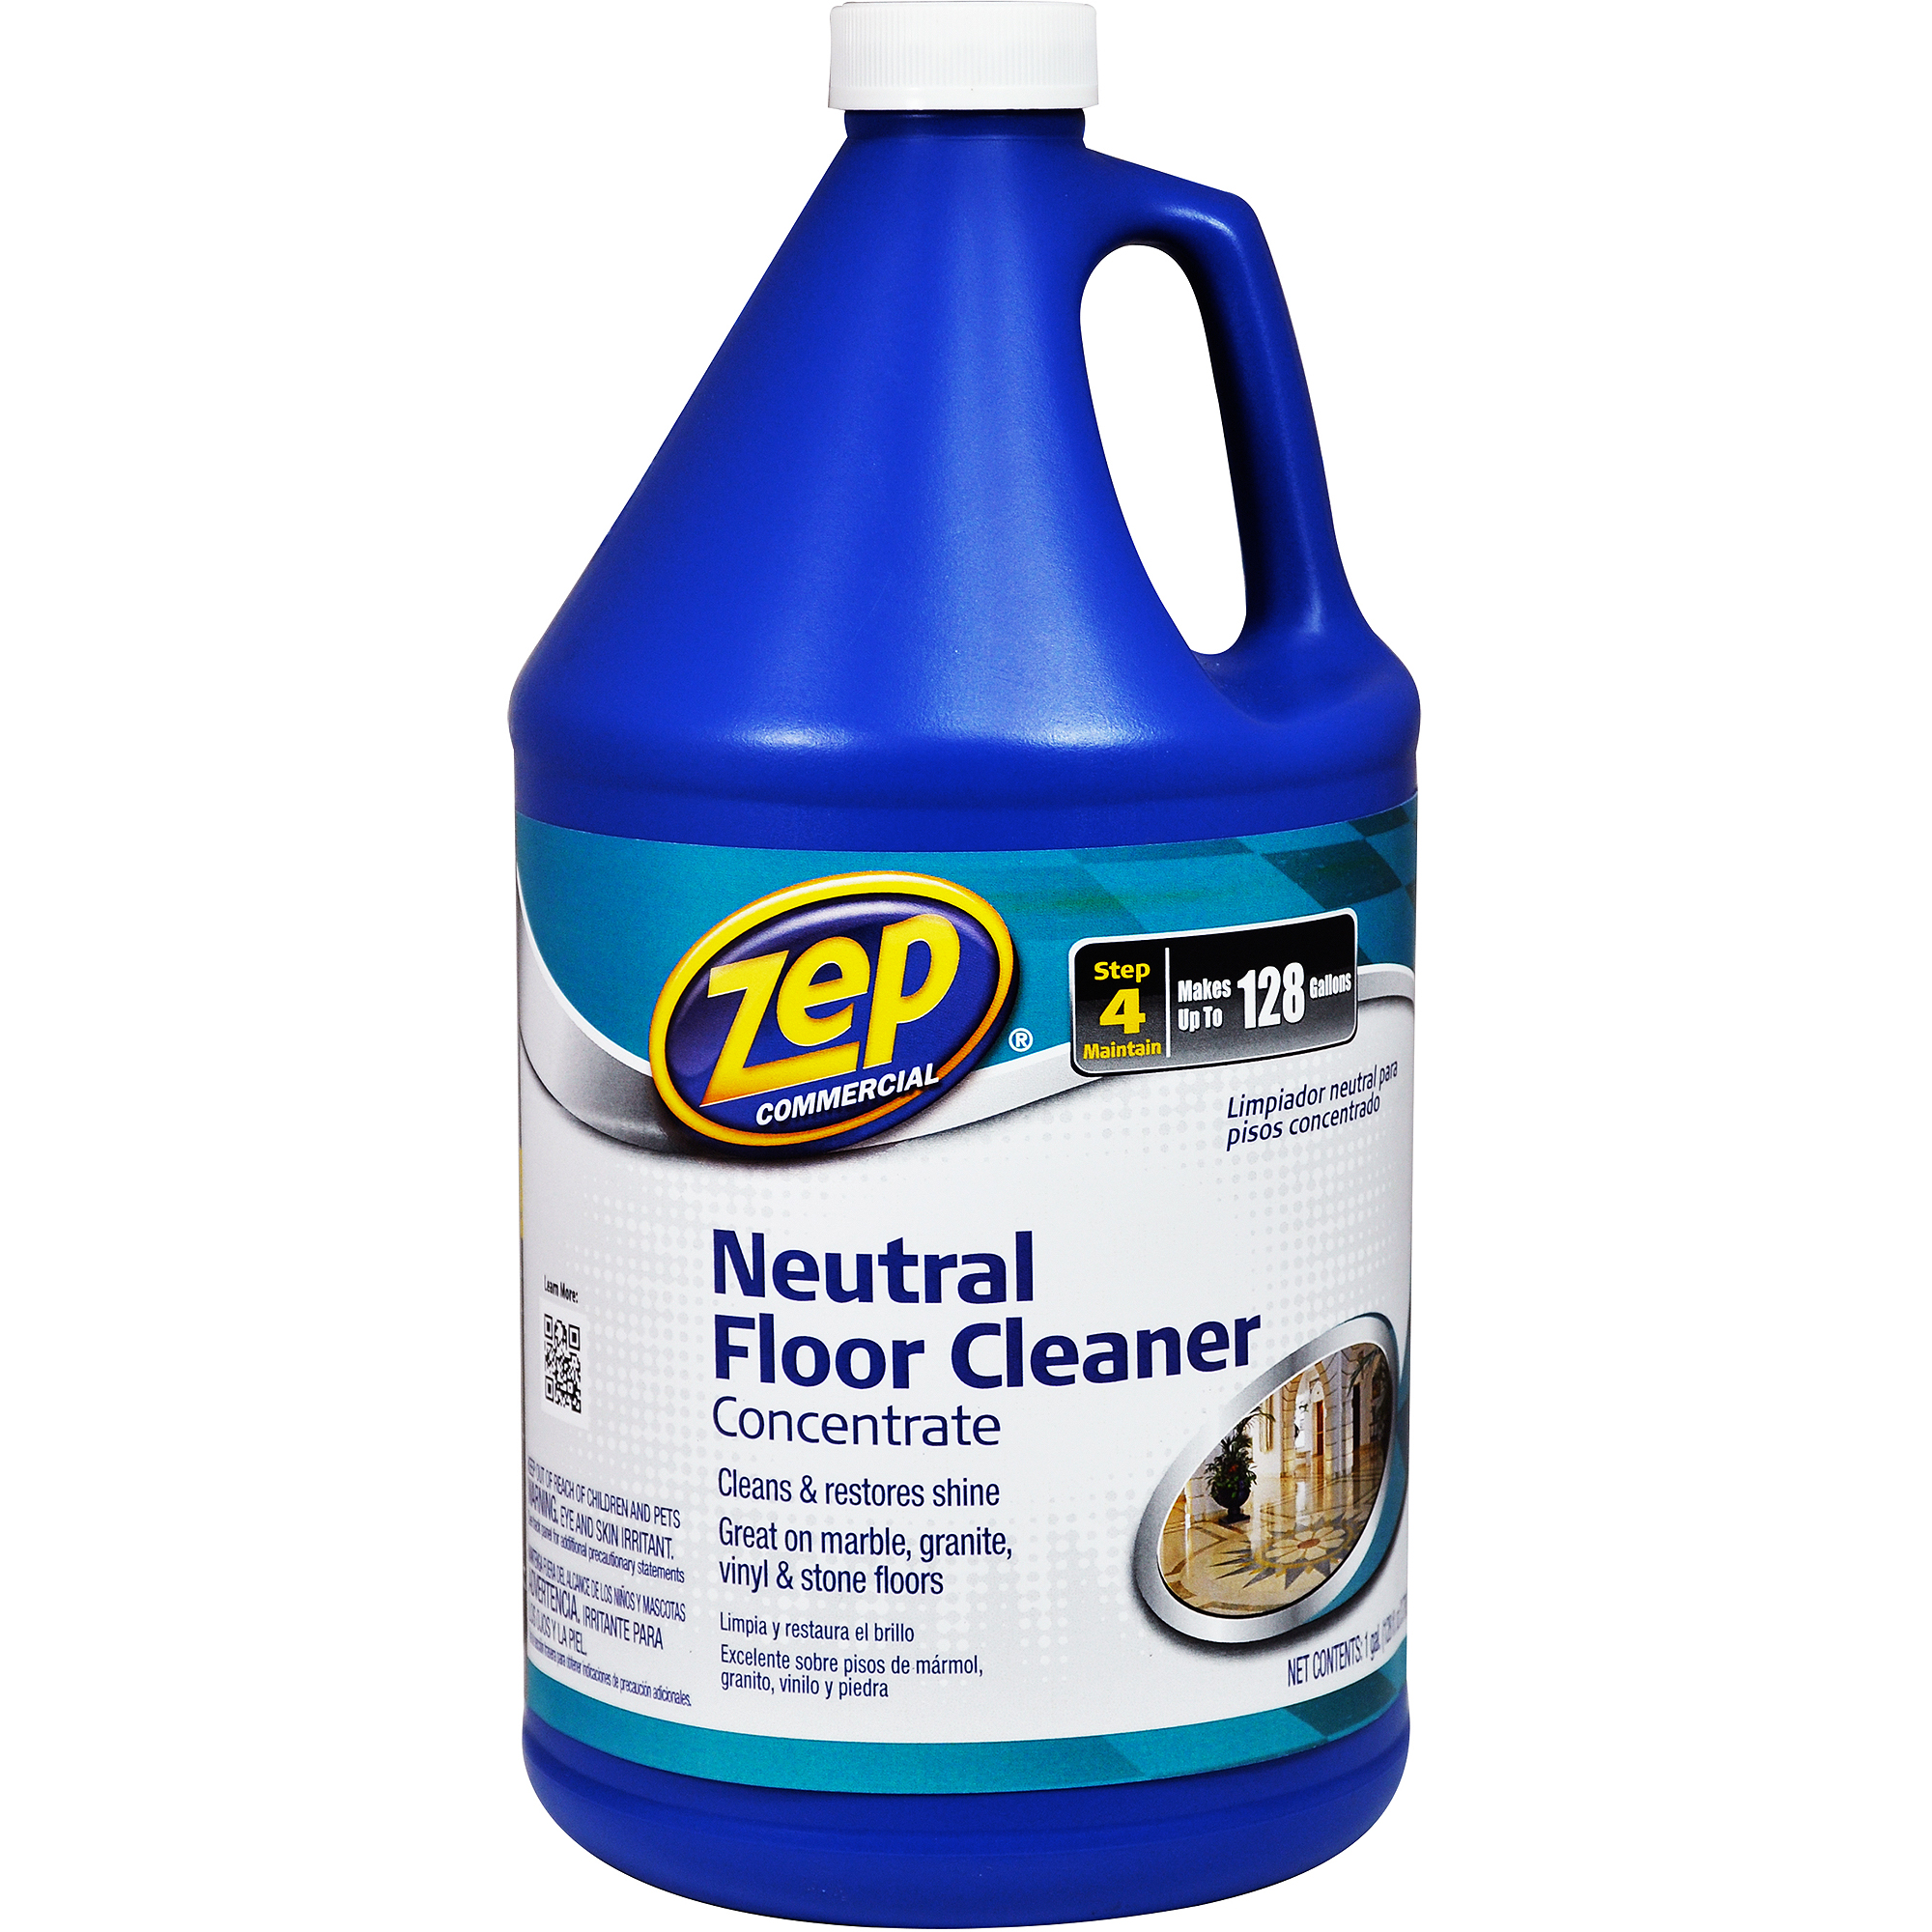 Zep Commercial Neutral Floor Cleaner Concentrate, 1 gal